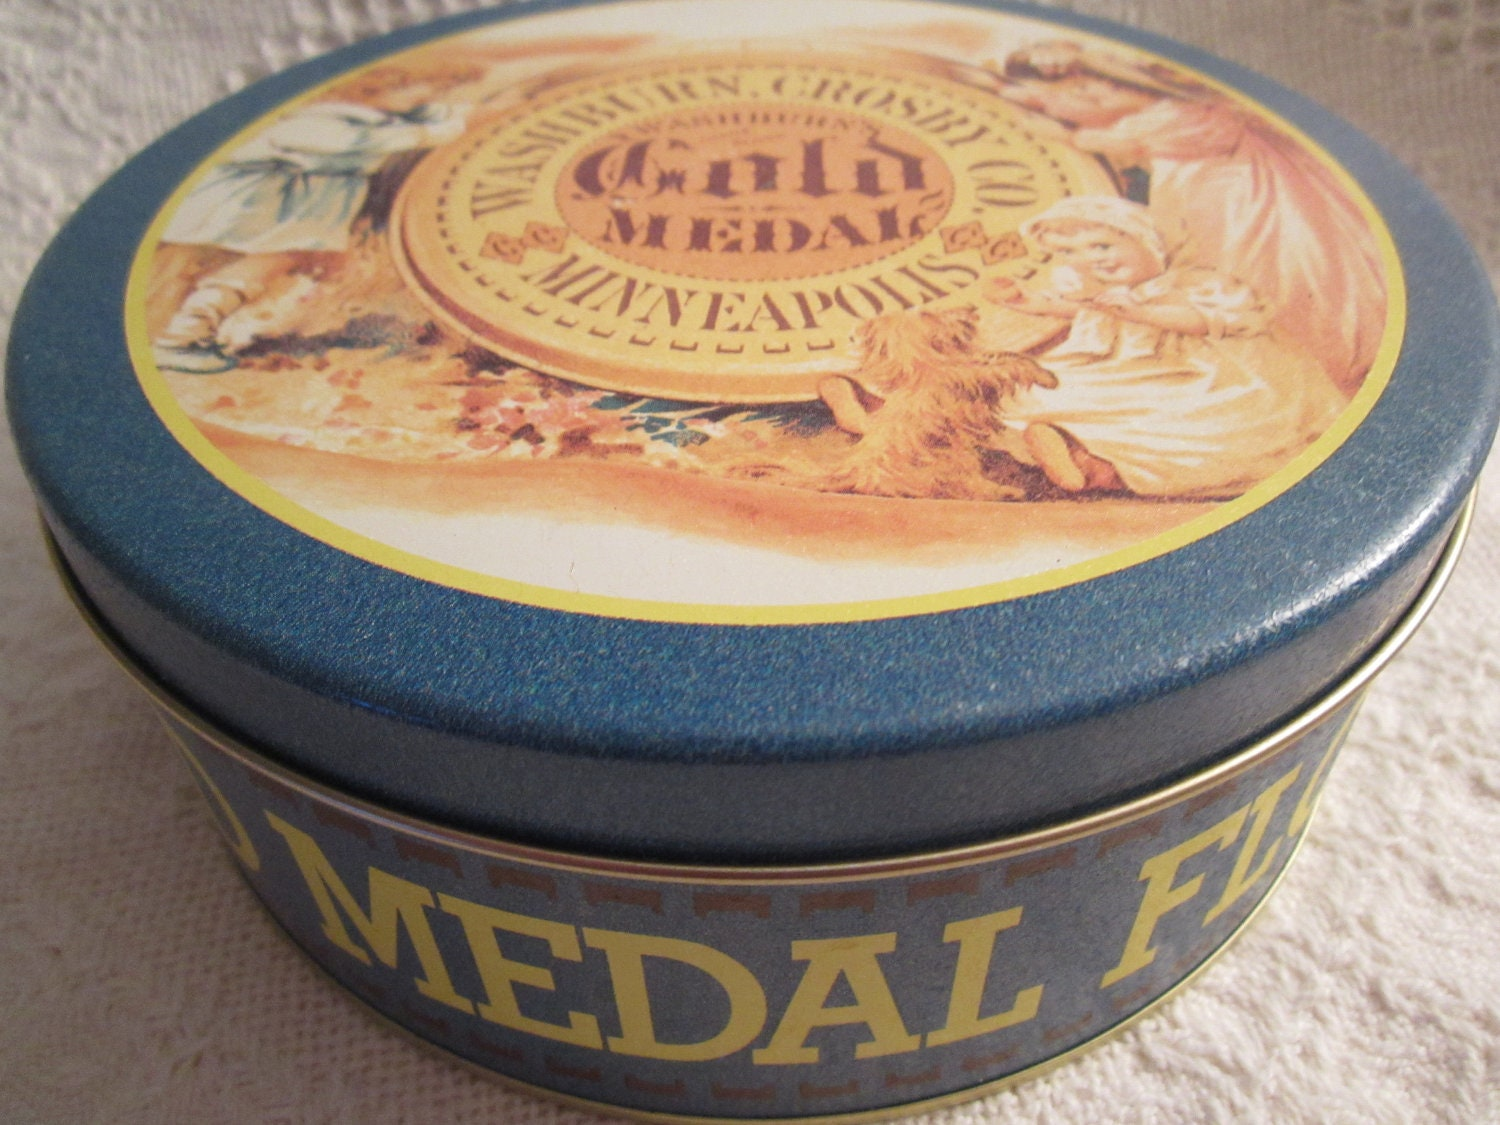 Vintage GOLD MEDAL Flour Tin Container by Washburn Crosby Co.